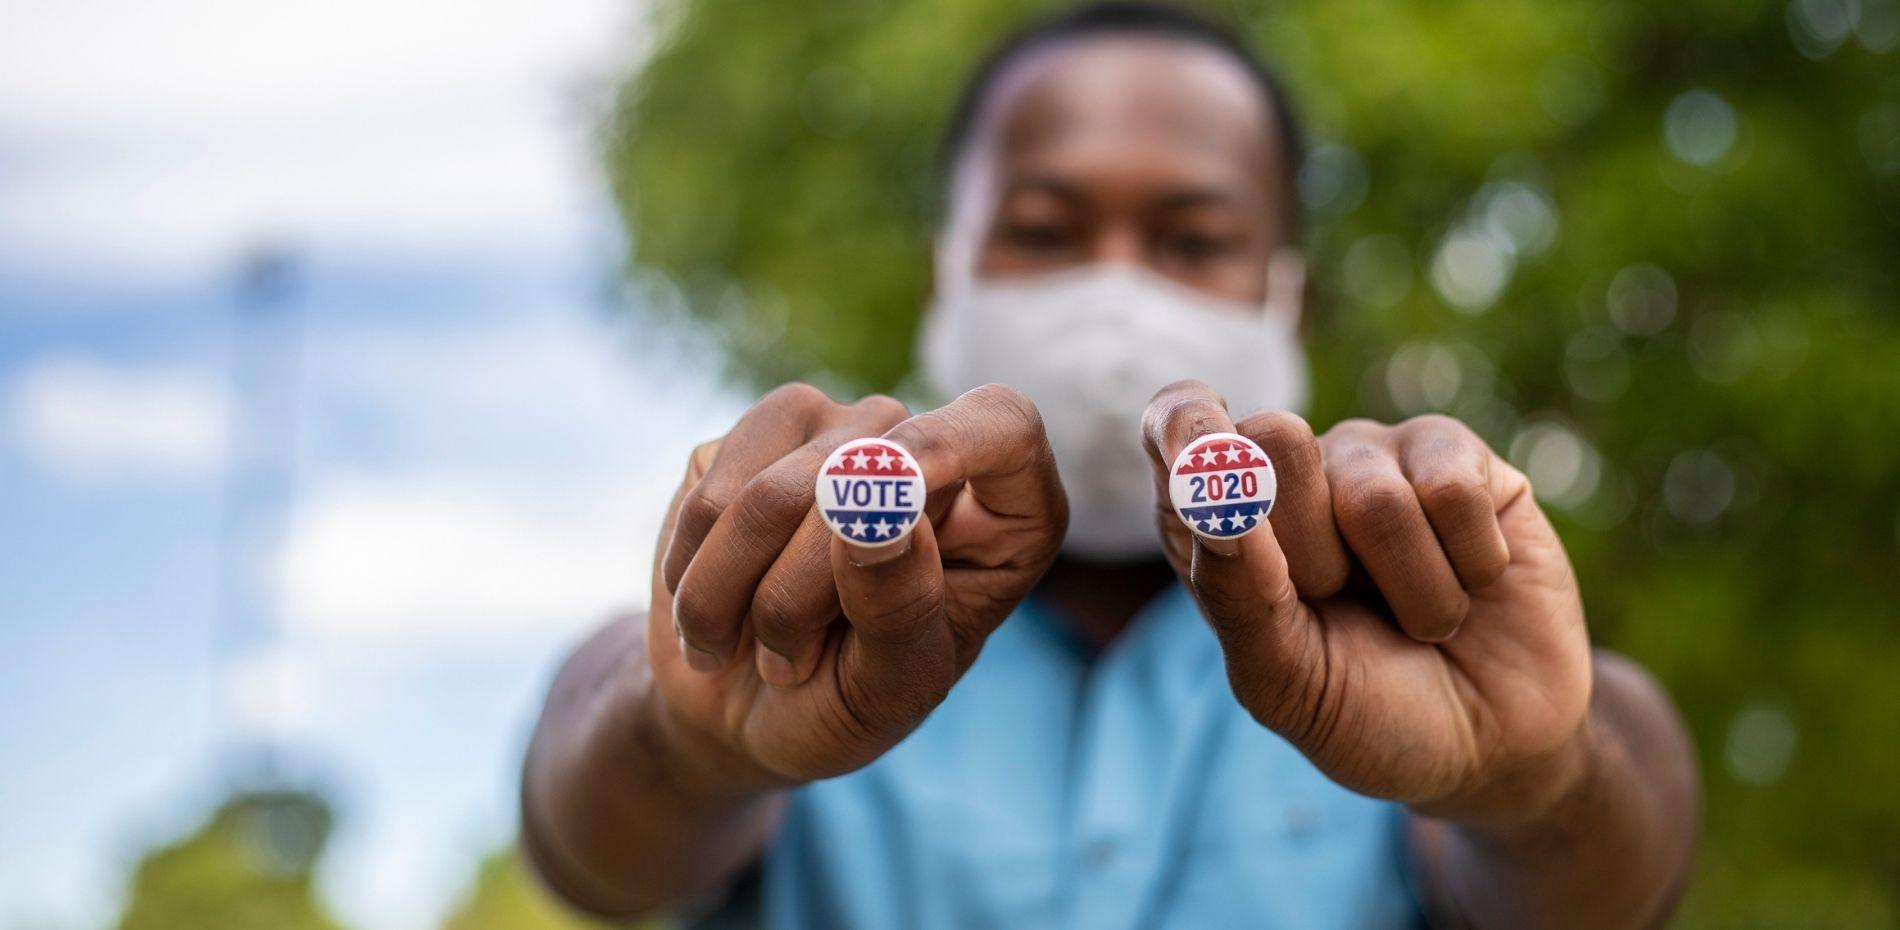 Male voter holding voting pins right after voting.